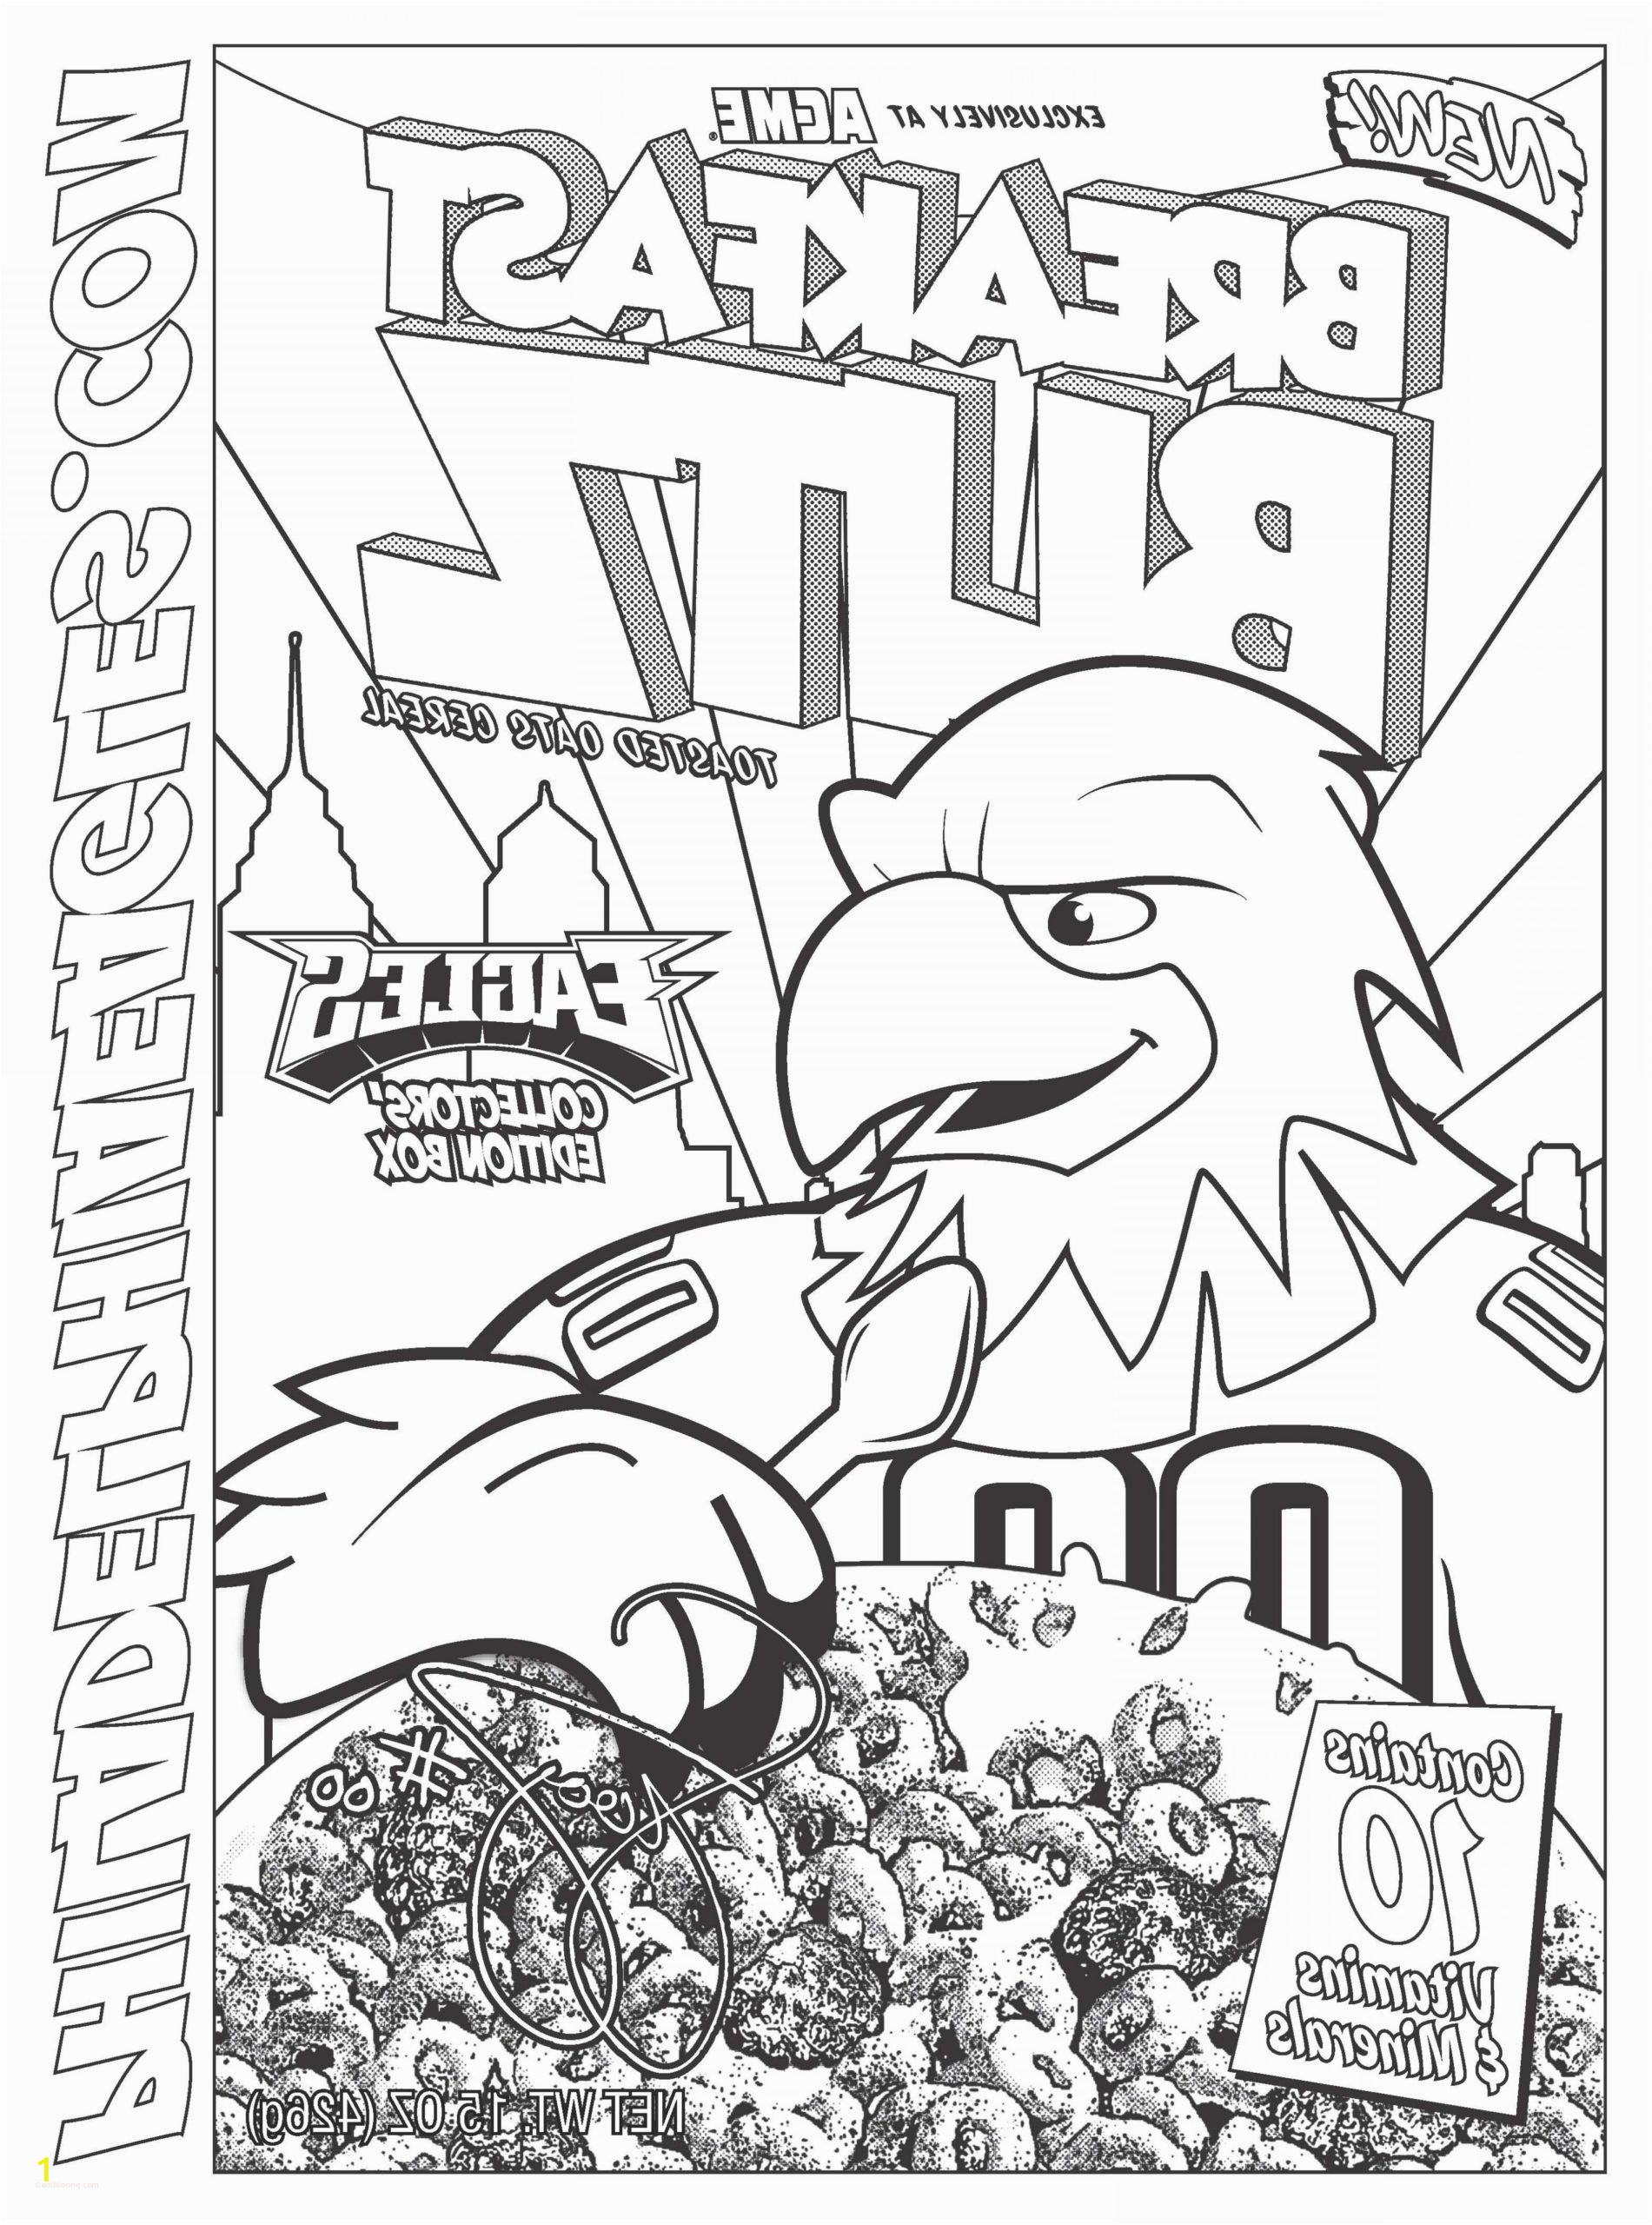 thanksgiving coloring pages for kids best of coloring book football coloring football coloring of thanksgiving coloring pages for kids